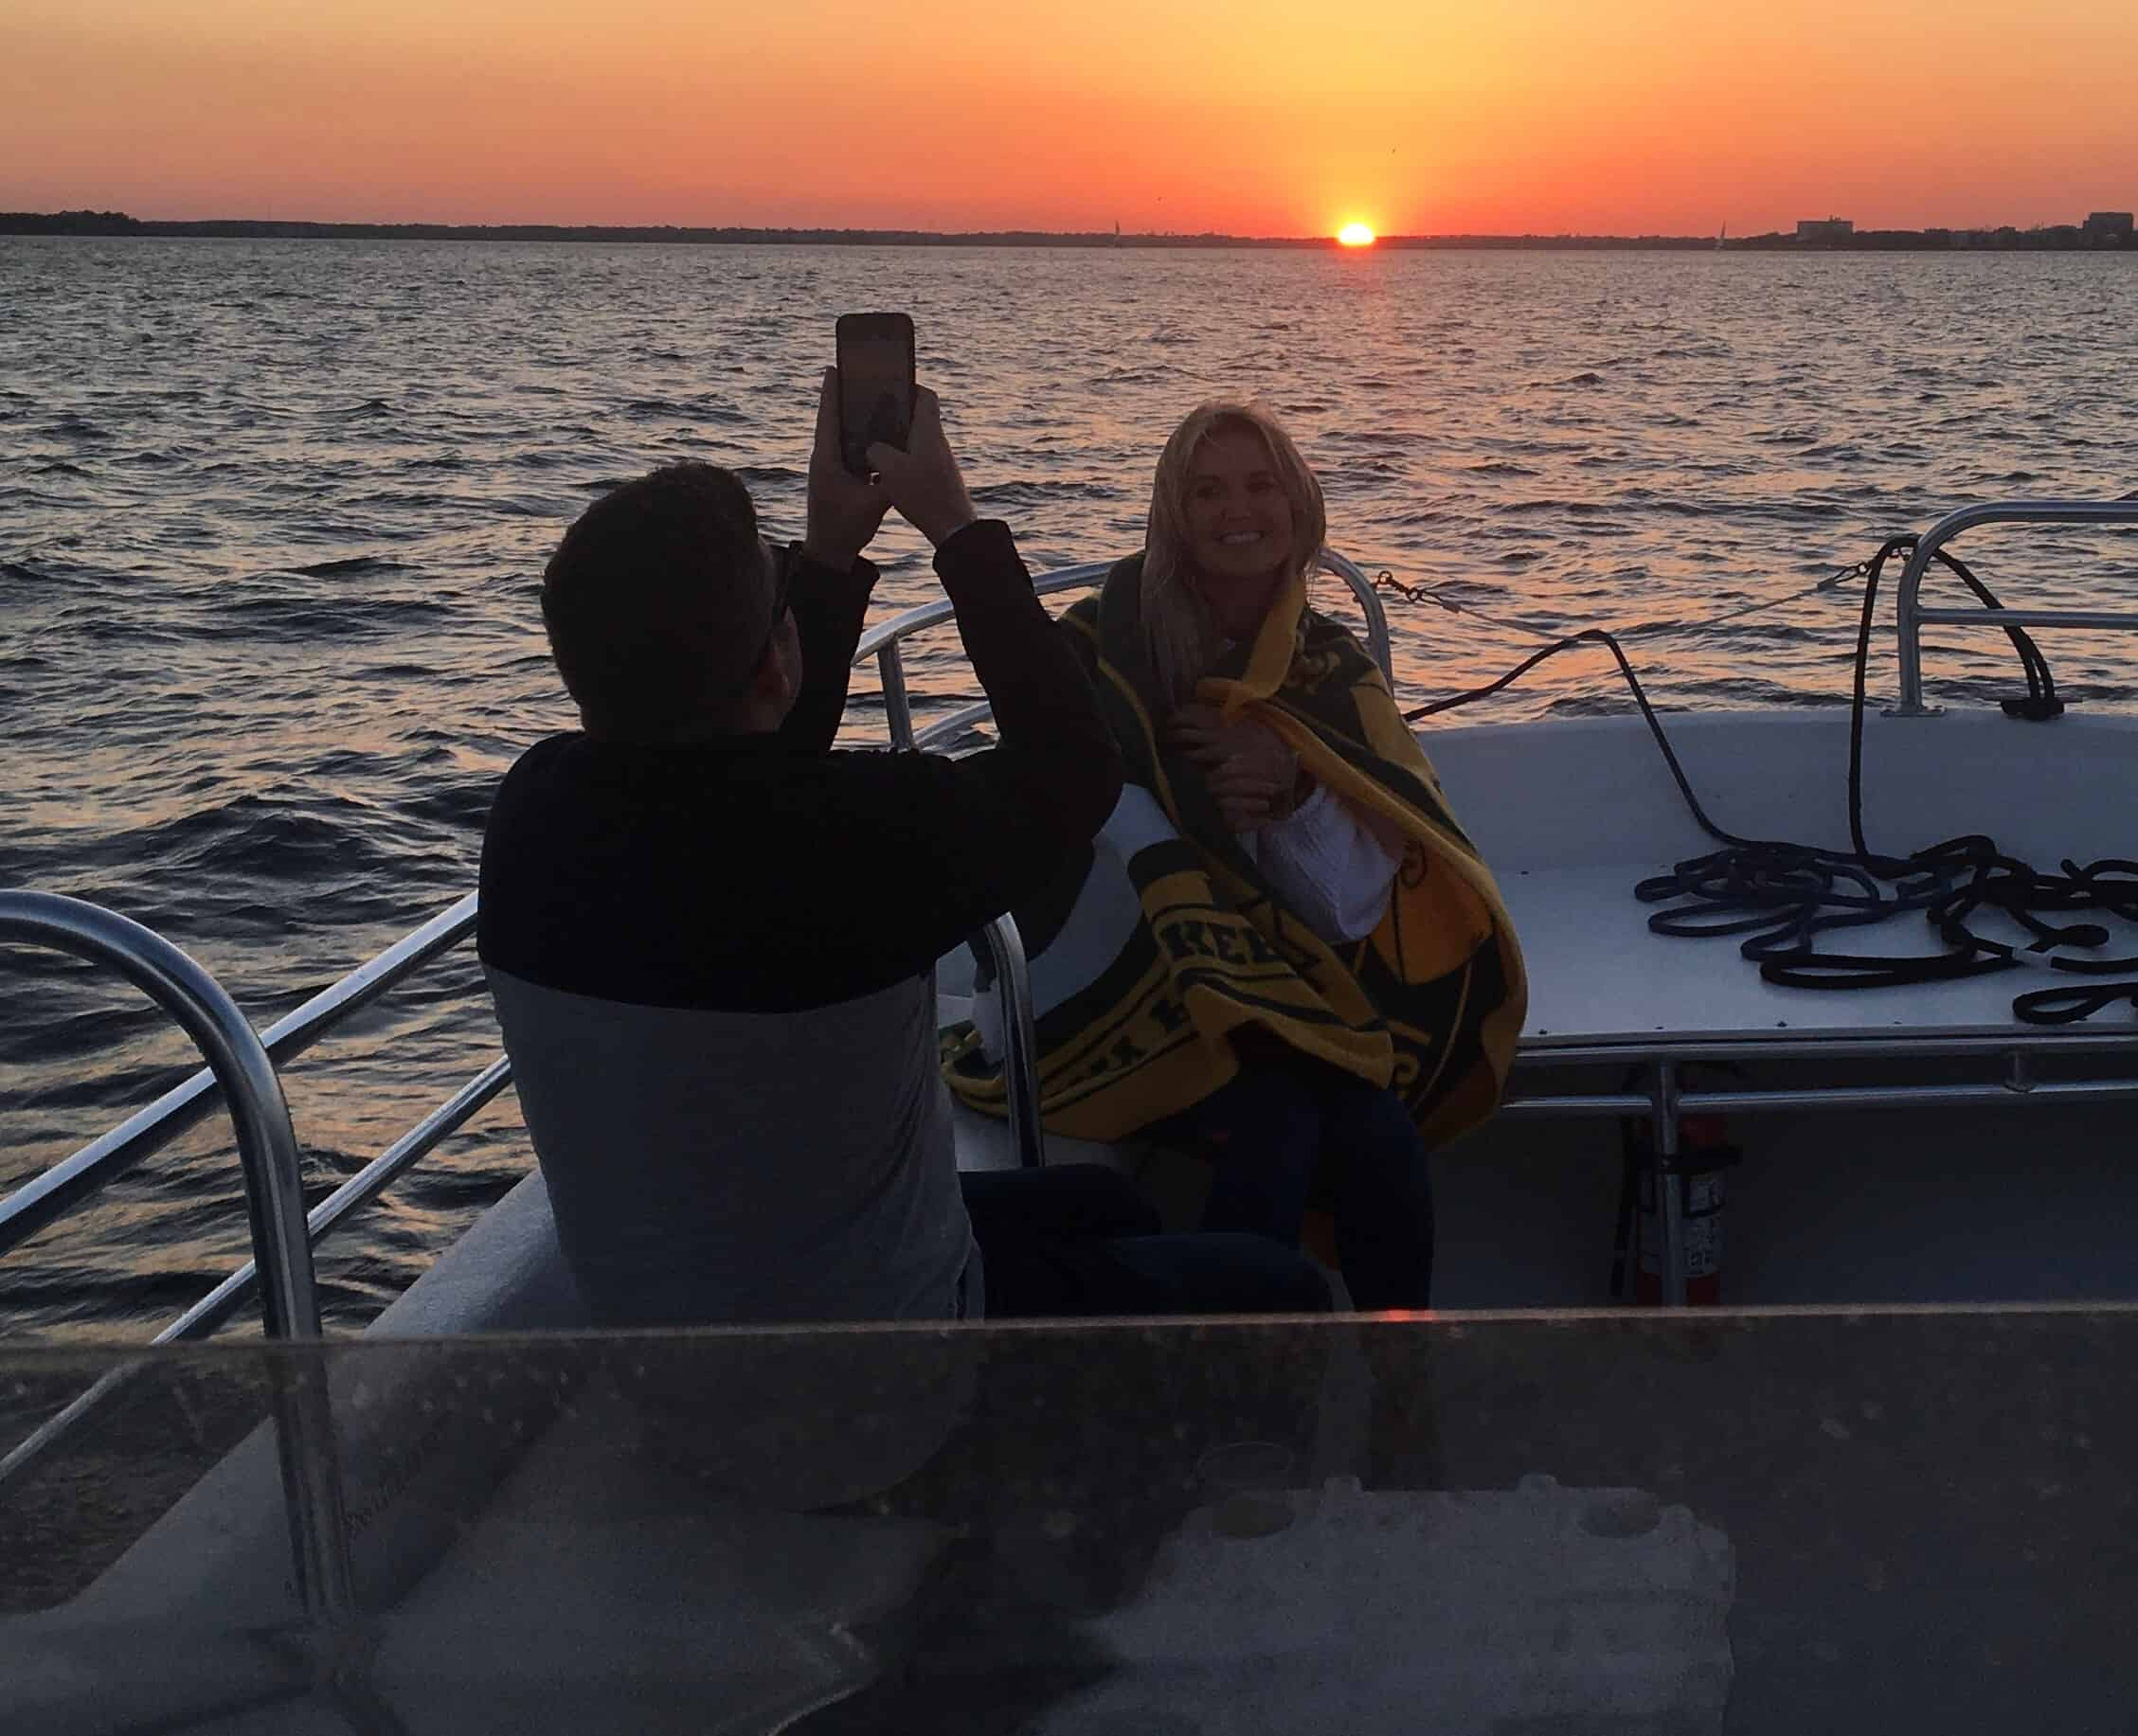 Woman getting her picture taken on the boat with the sunset behind her. Sunset booze cruise Charleston, SC